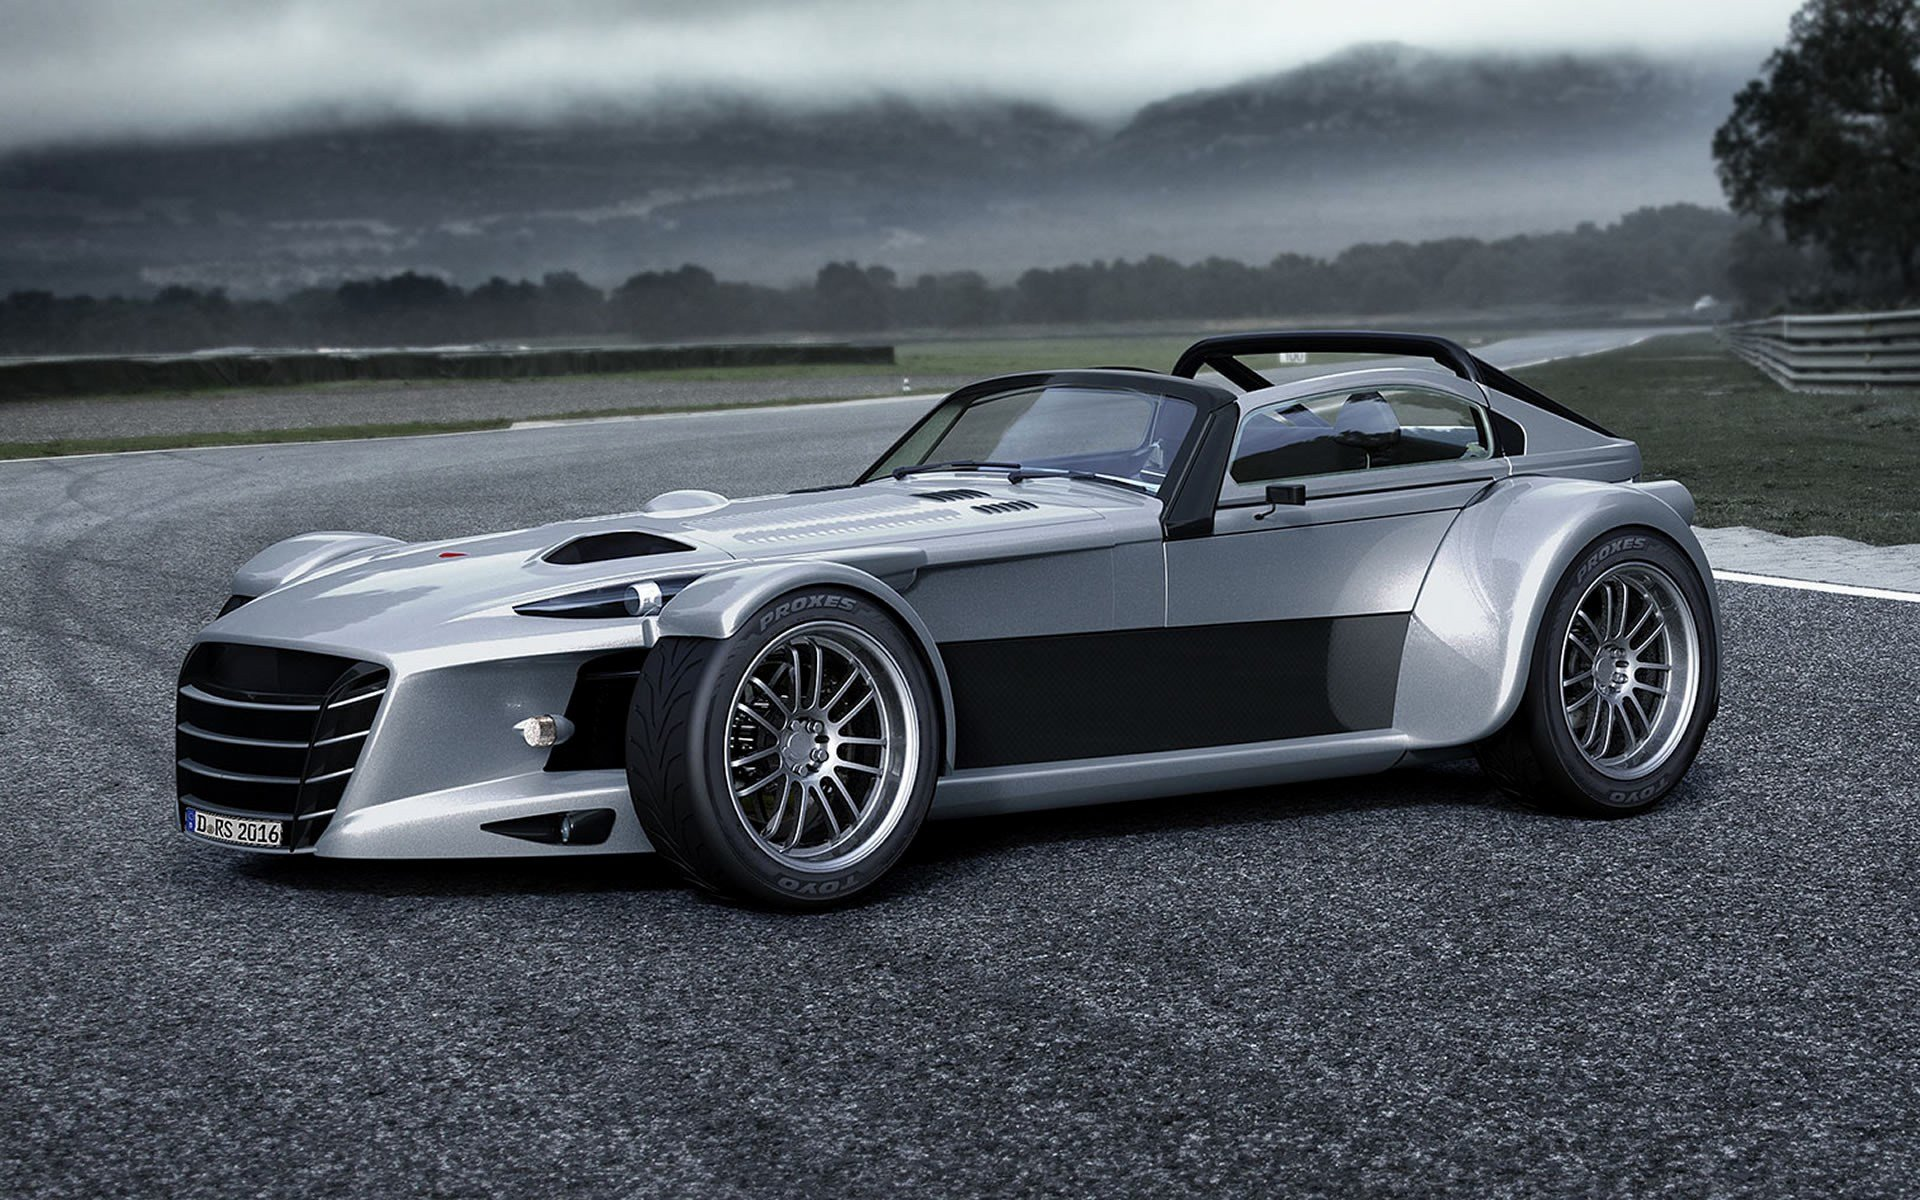 New Donkervoort D8 Gto Rs 2016 Wallpapers And Hd Images On This Month